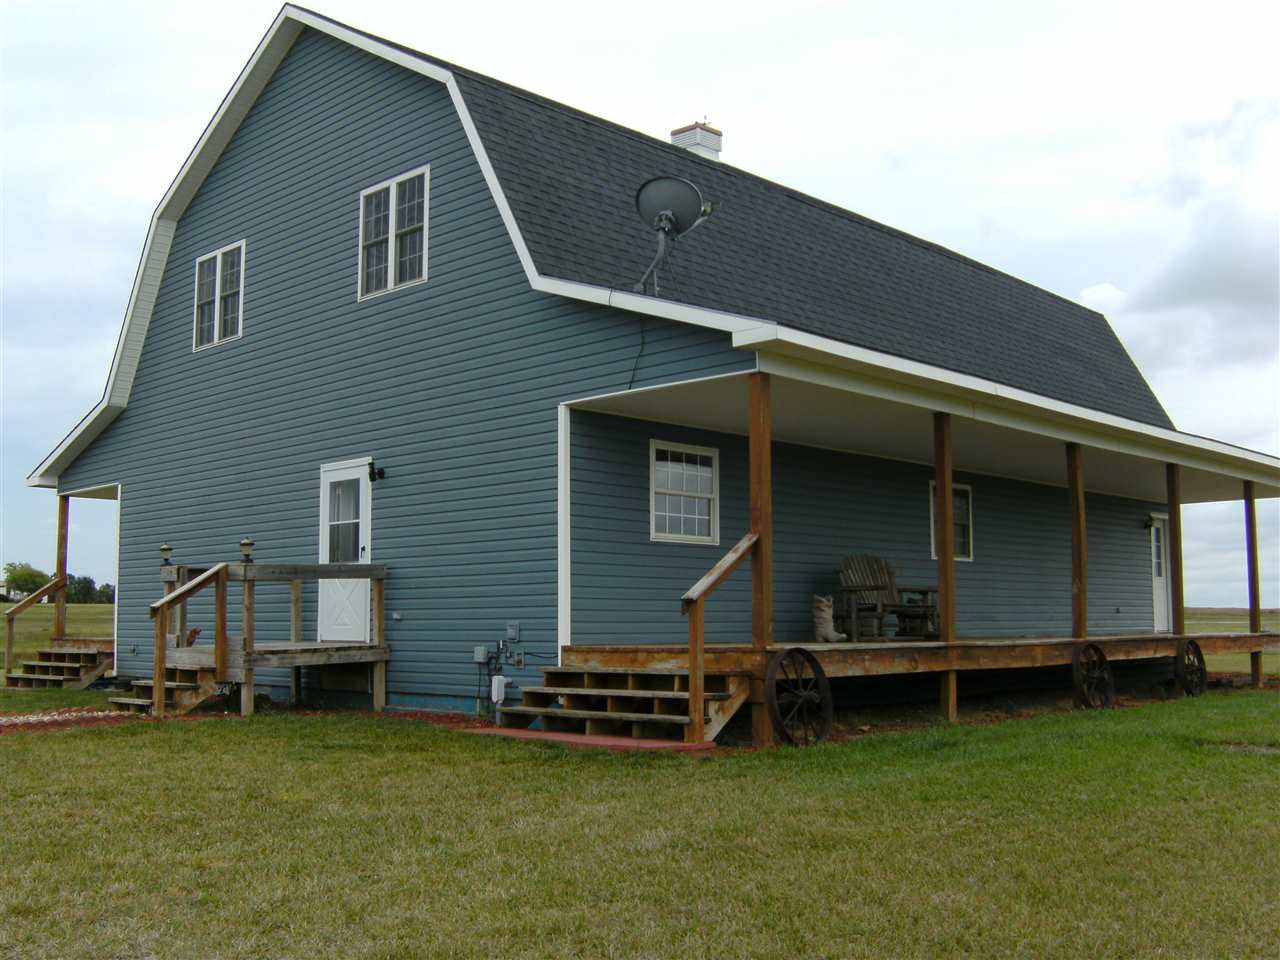 11710 S 199th W, Clearwater, KS 67026